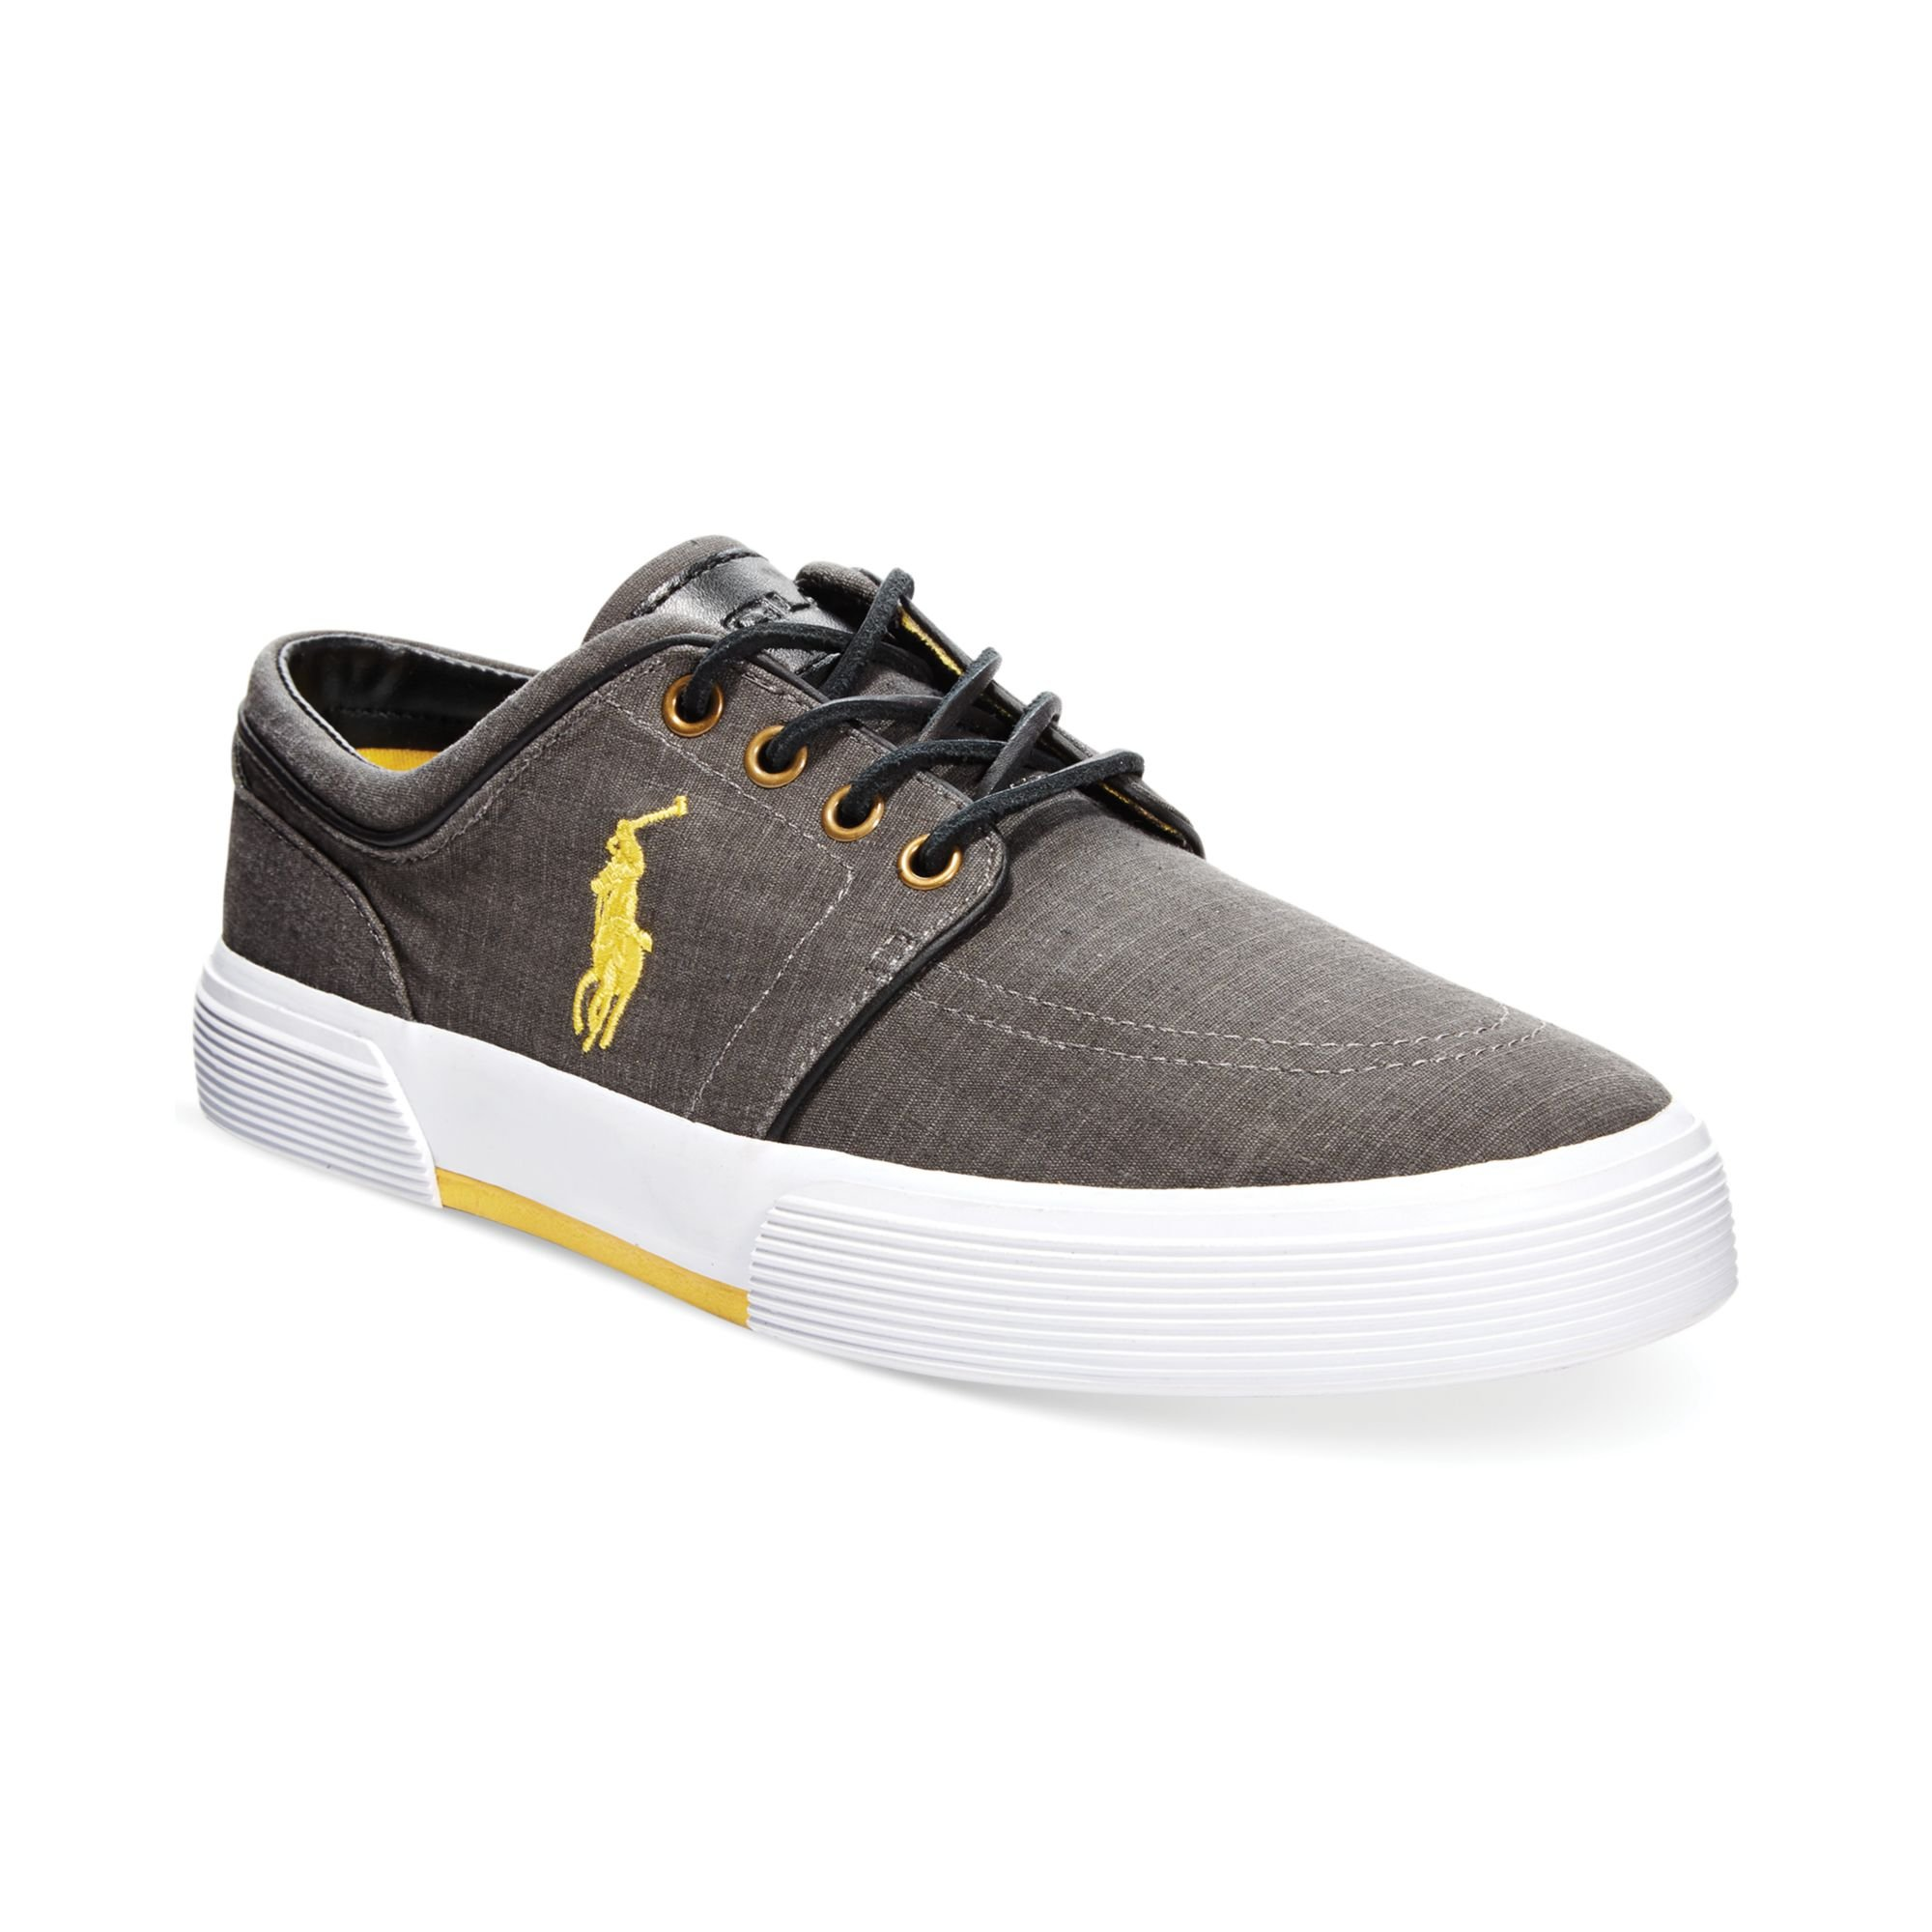 polo ralph lauren faxon ripstop canvas sneakers in black. Black Bedroom Furniture Sets. Home Design Ideas